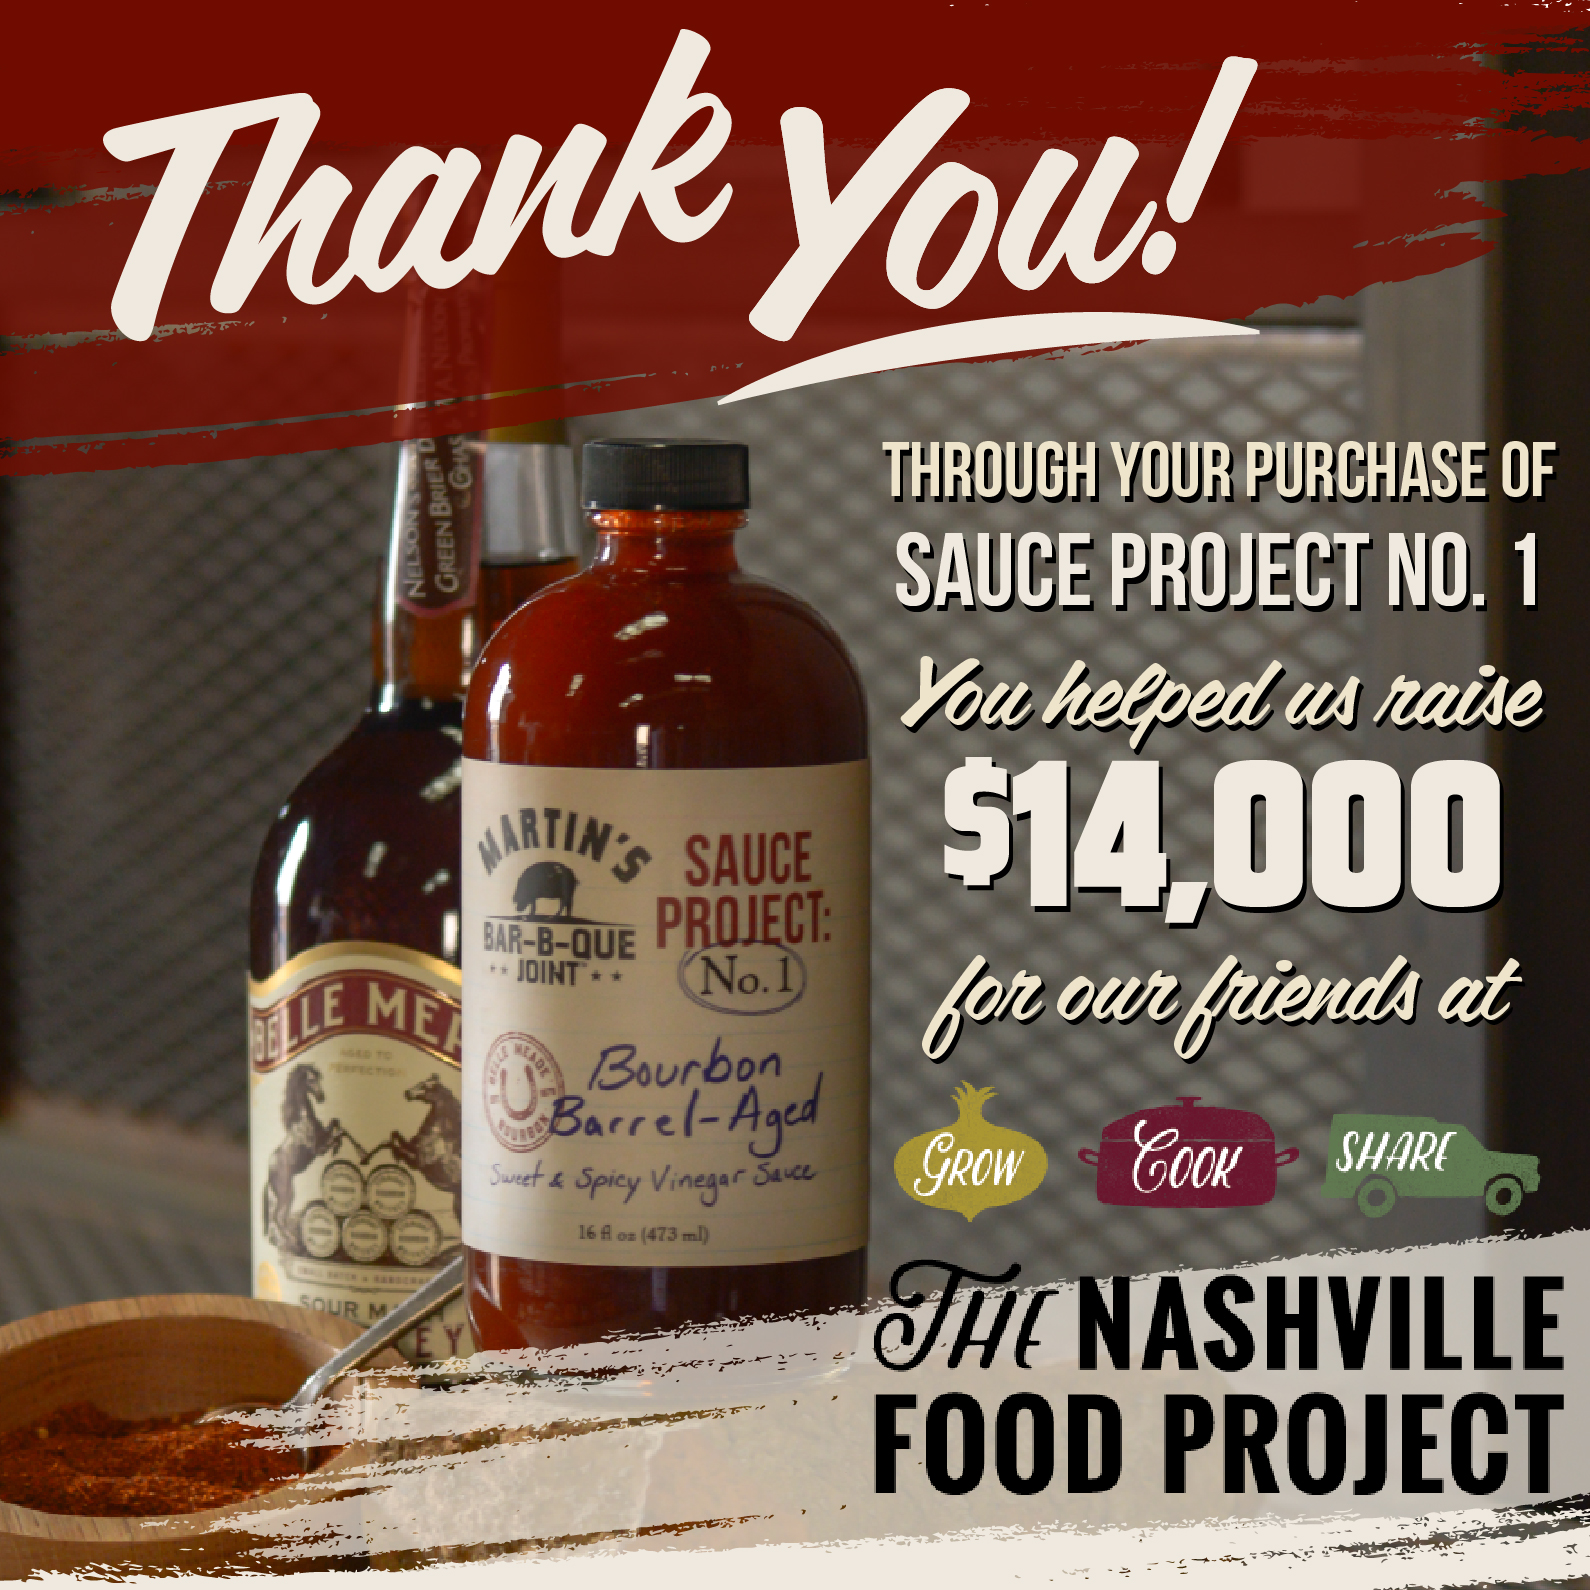 Sauce Project Charity Image-01.jpg